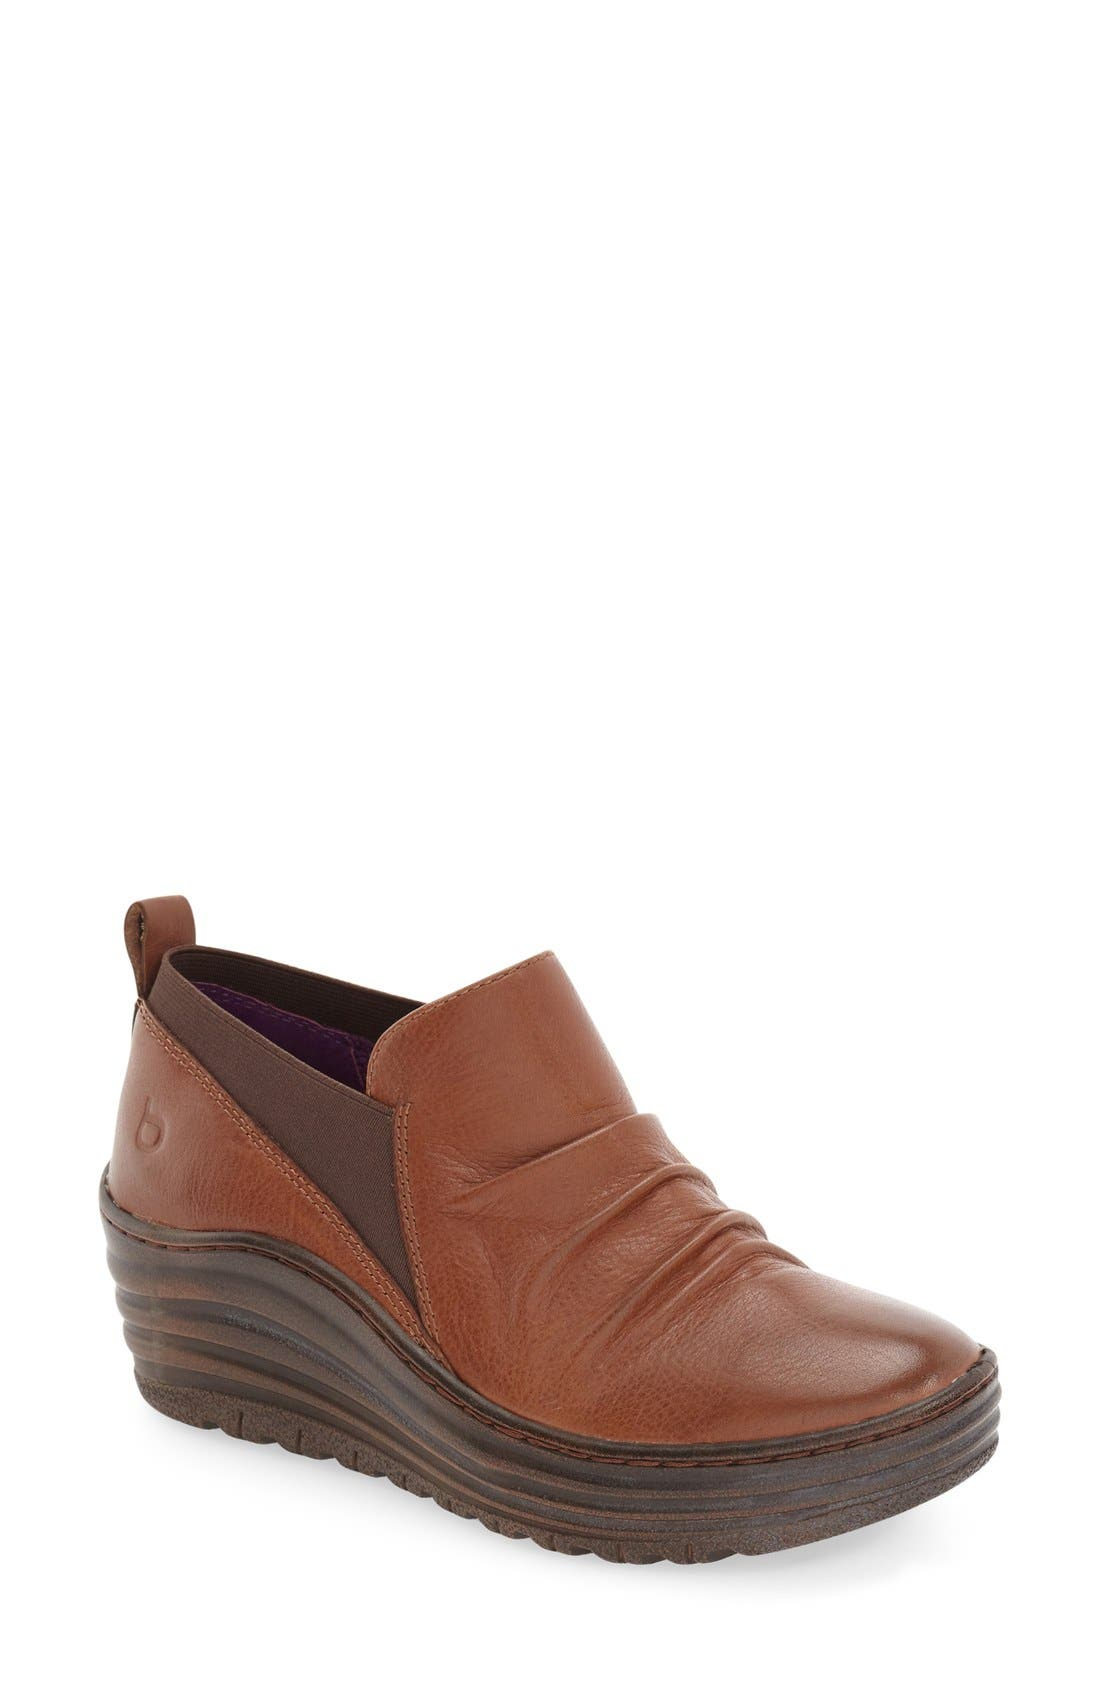 'Gallant' Leather Bootie,                             Main thumbnail 1, color,                             PINECONE LEATHER